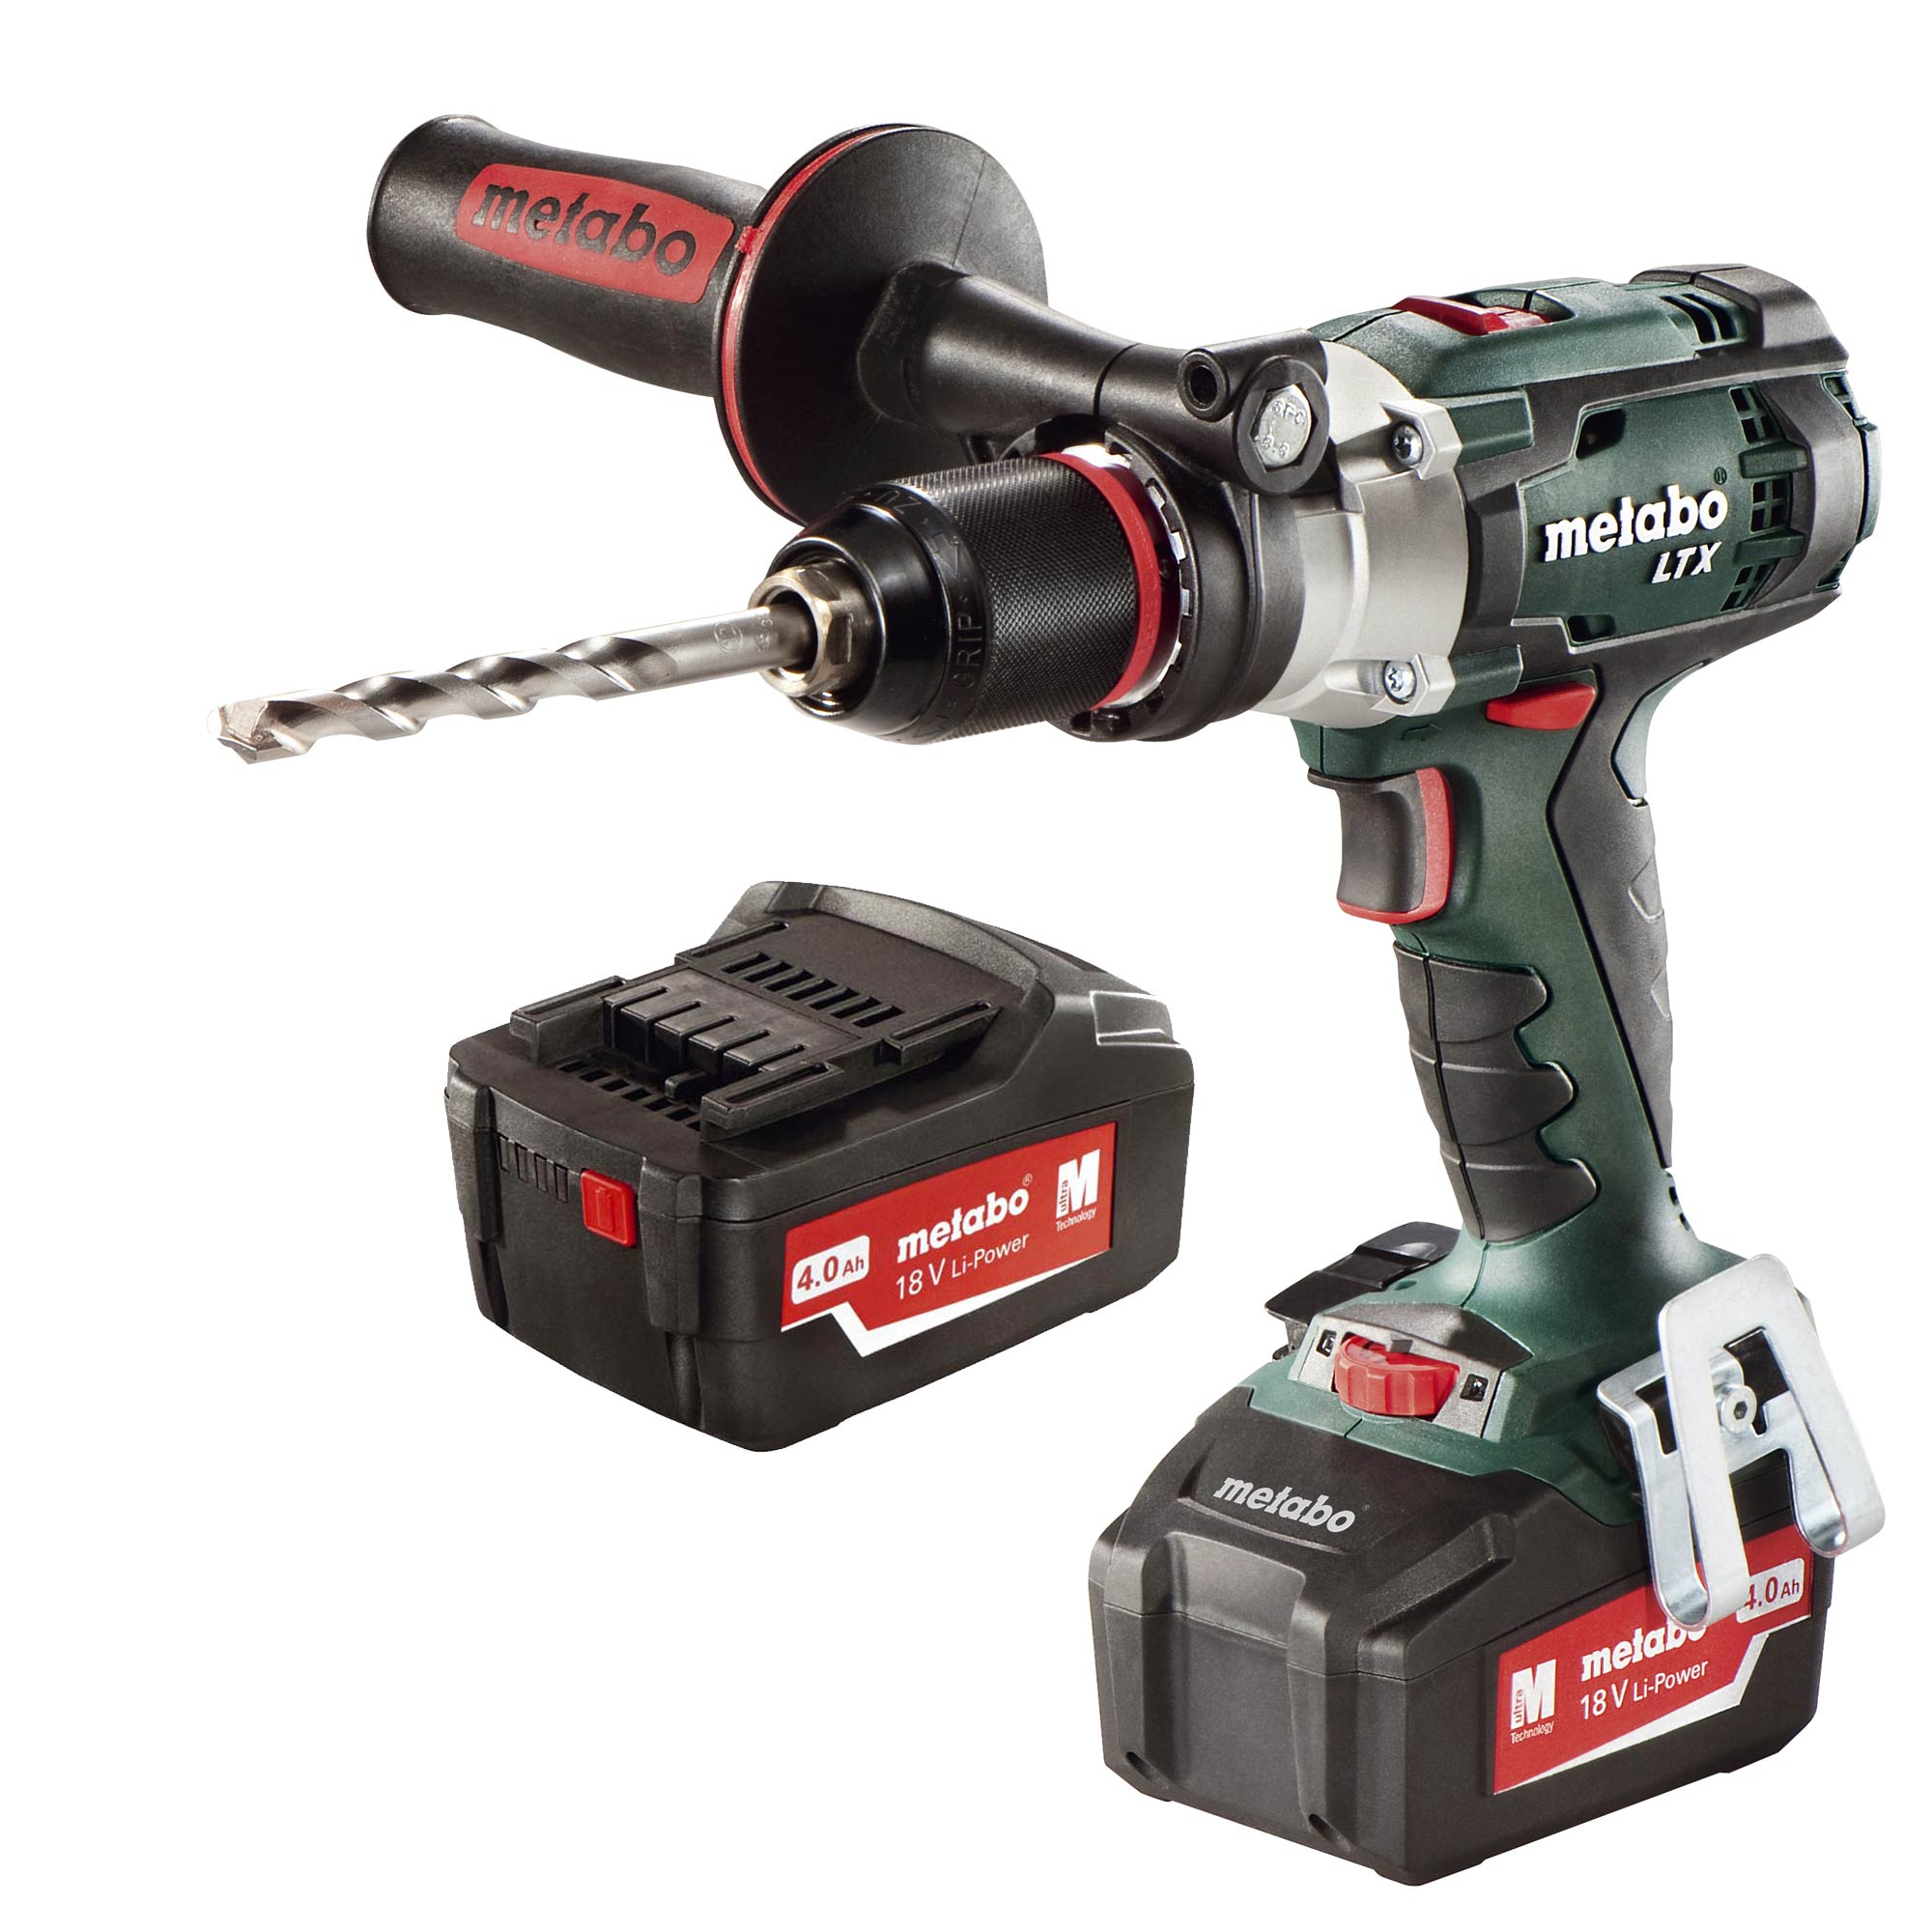 metabo sb18ltx metabo 18v hammer drill driver. Black Bedroom Furniture Sets. Home Design Ideas